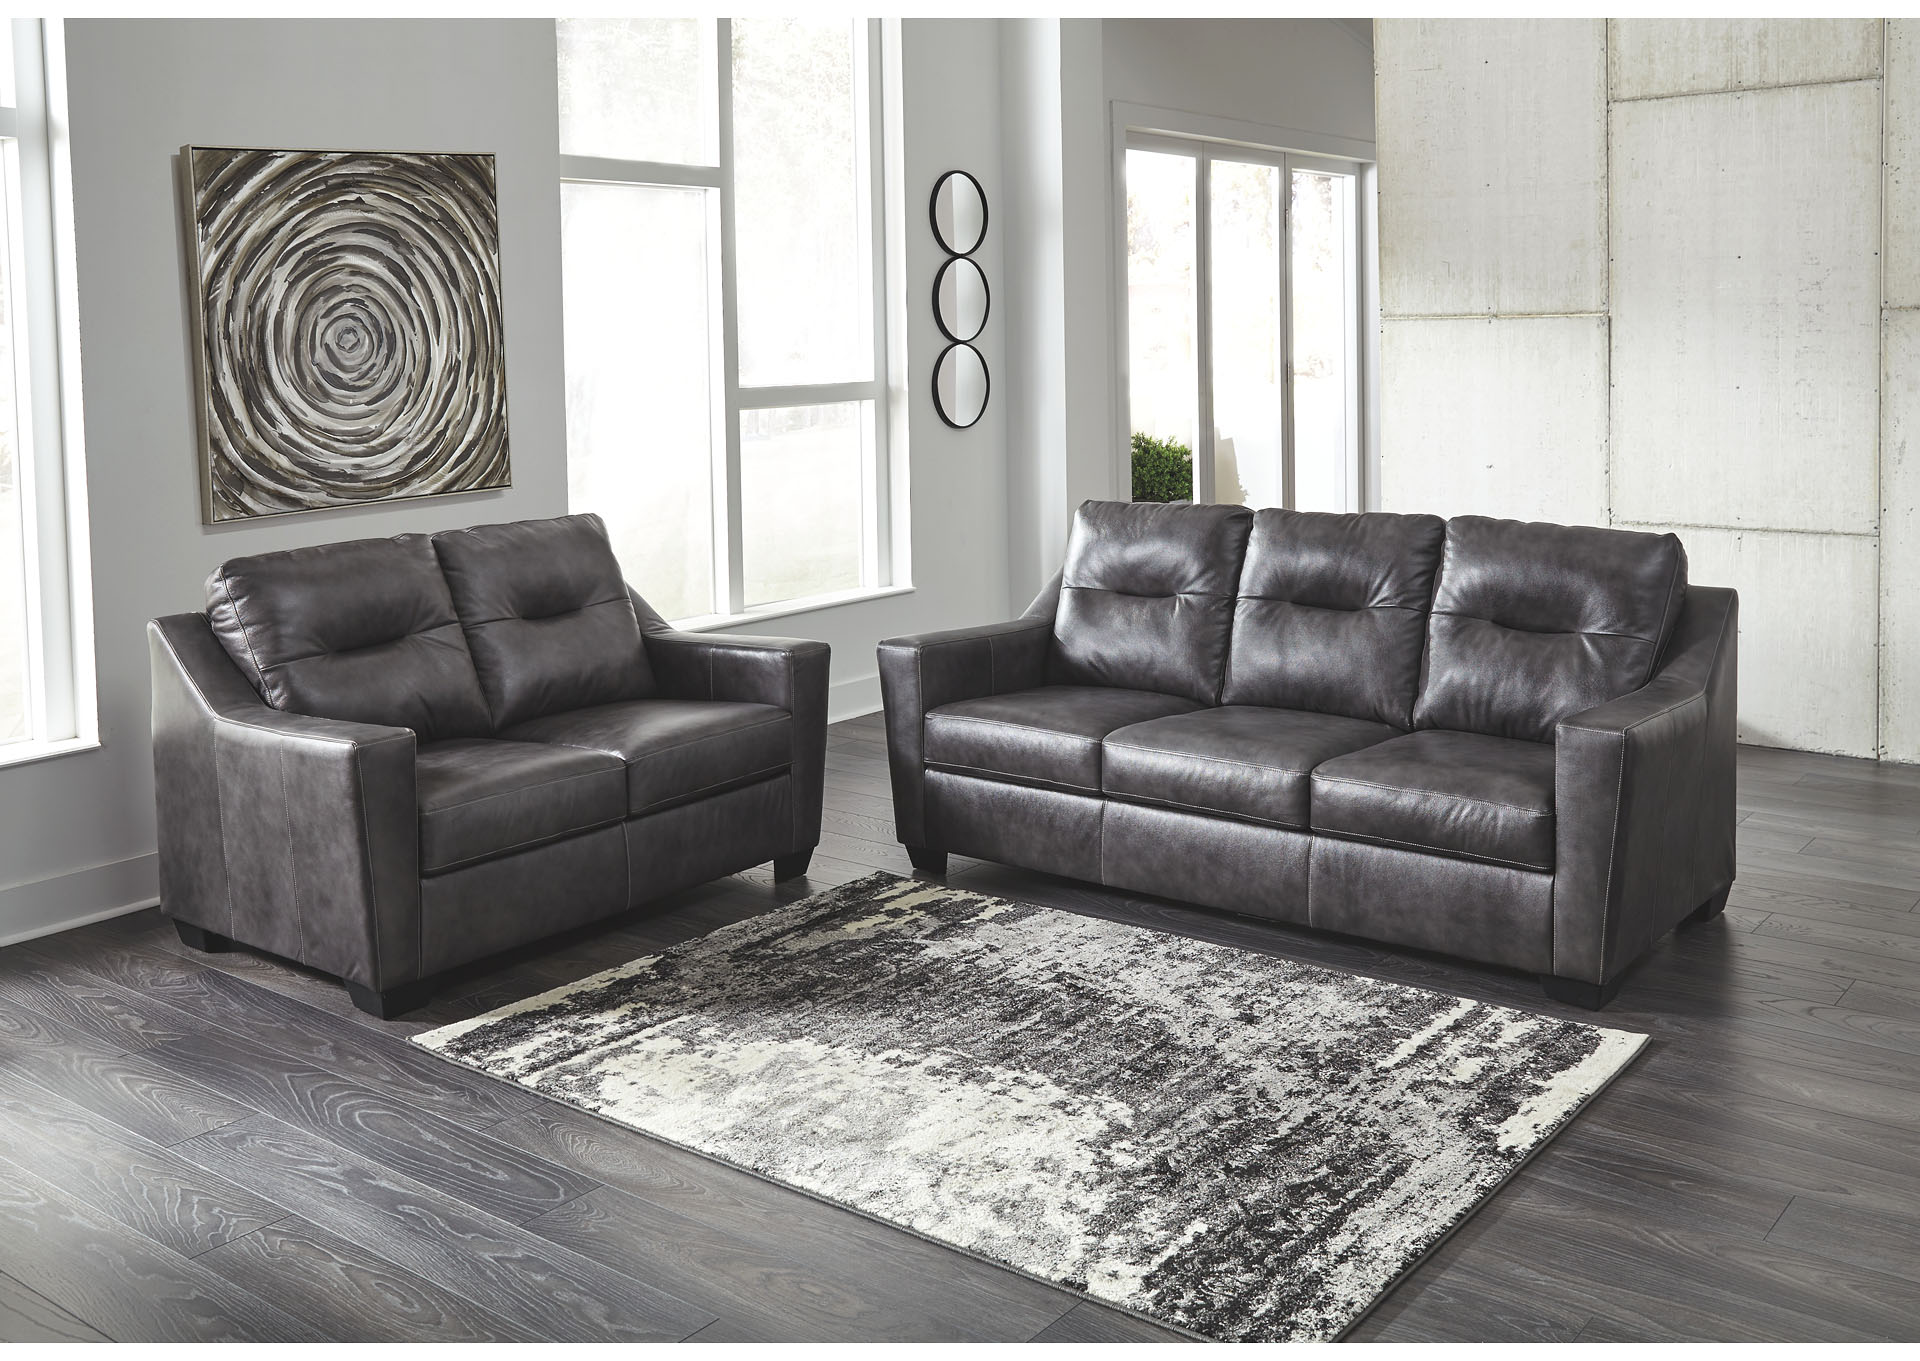 Kensbridge Charcoal Sofa and Loveseat,Signature Design by Ashley